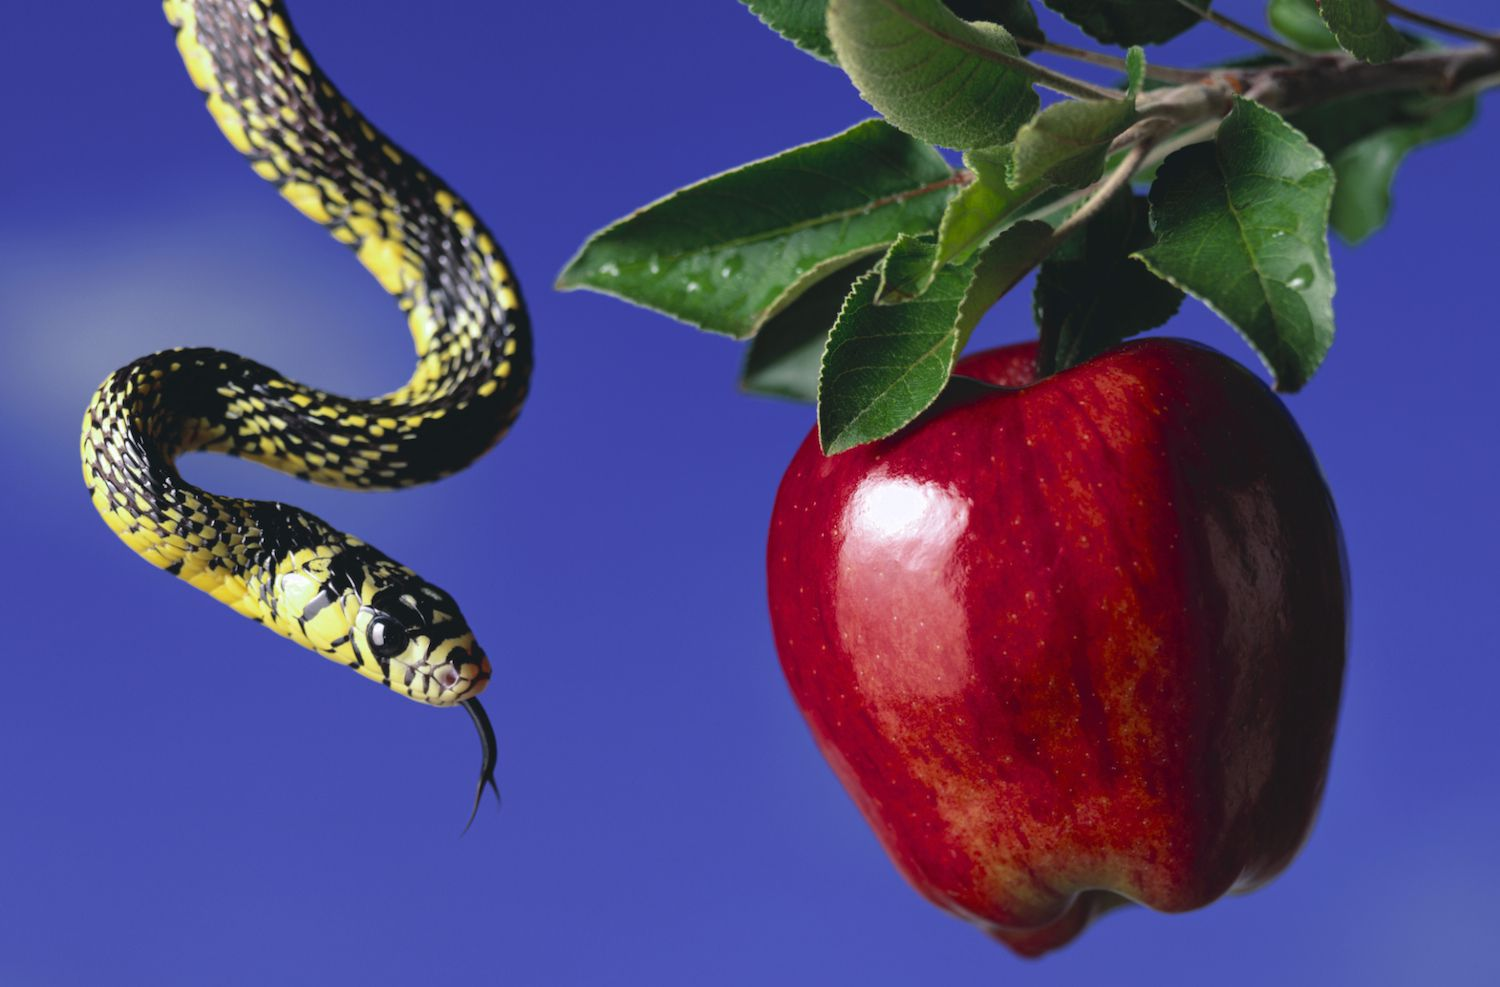 Serpent and Apple